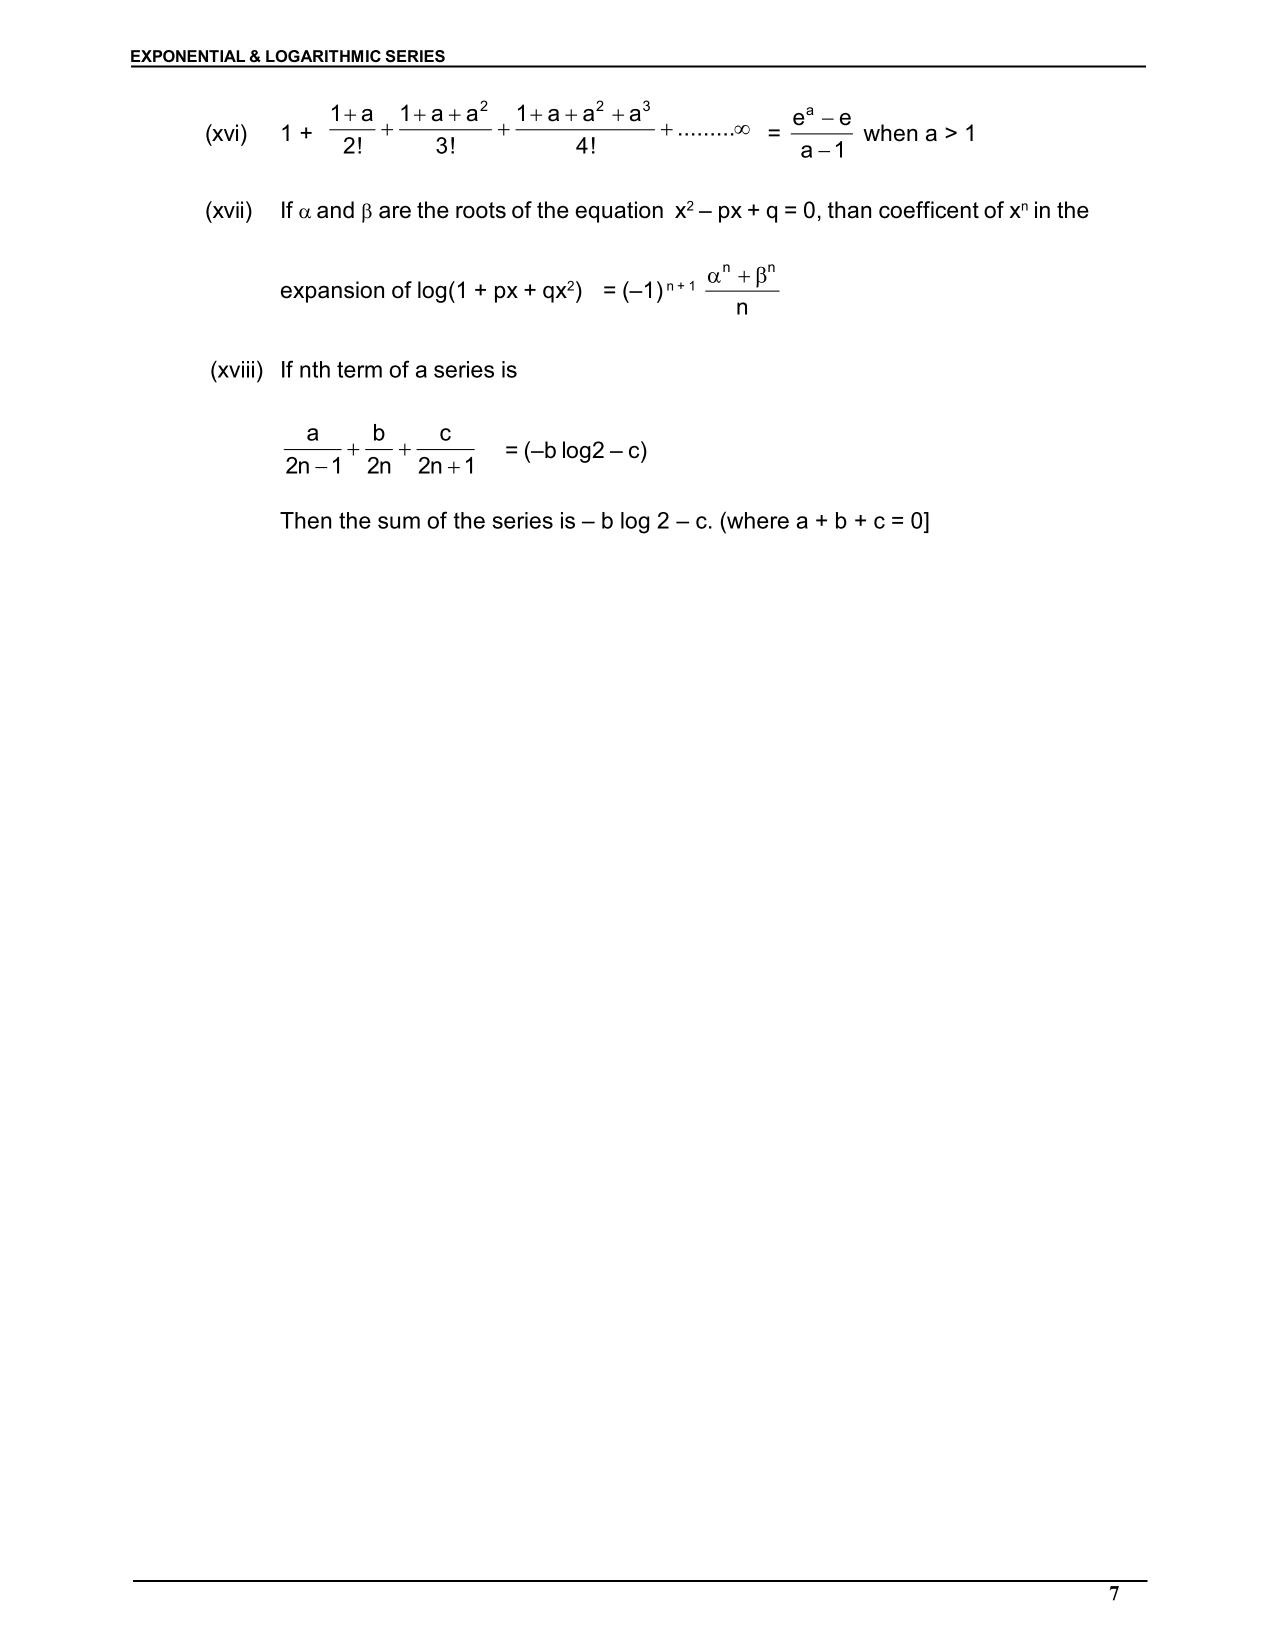 Exponential & Logarthmic Function